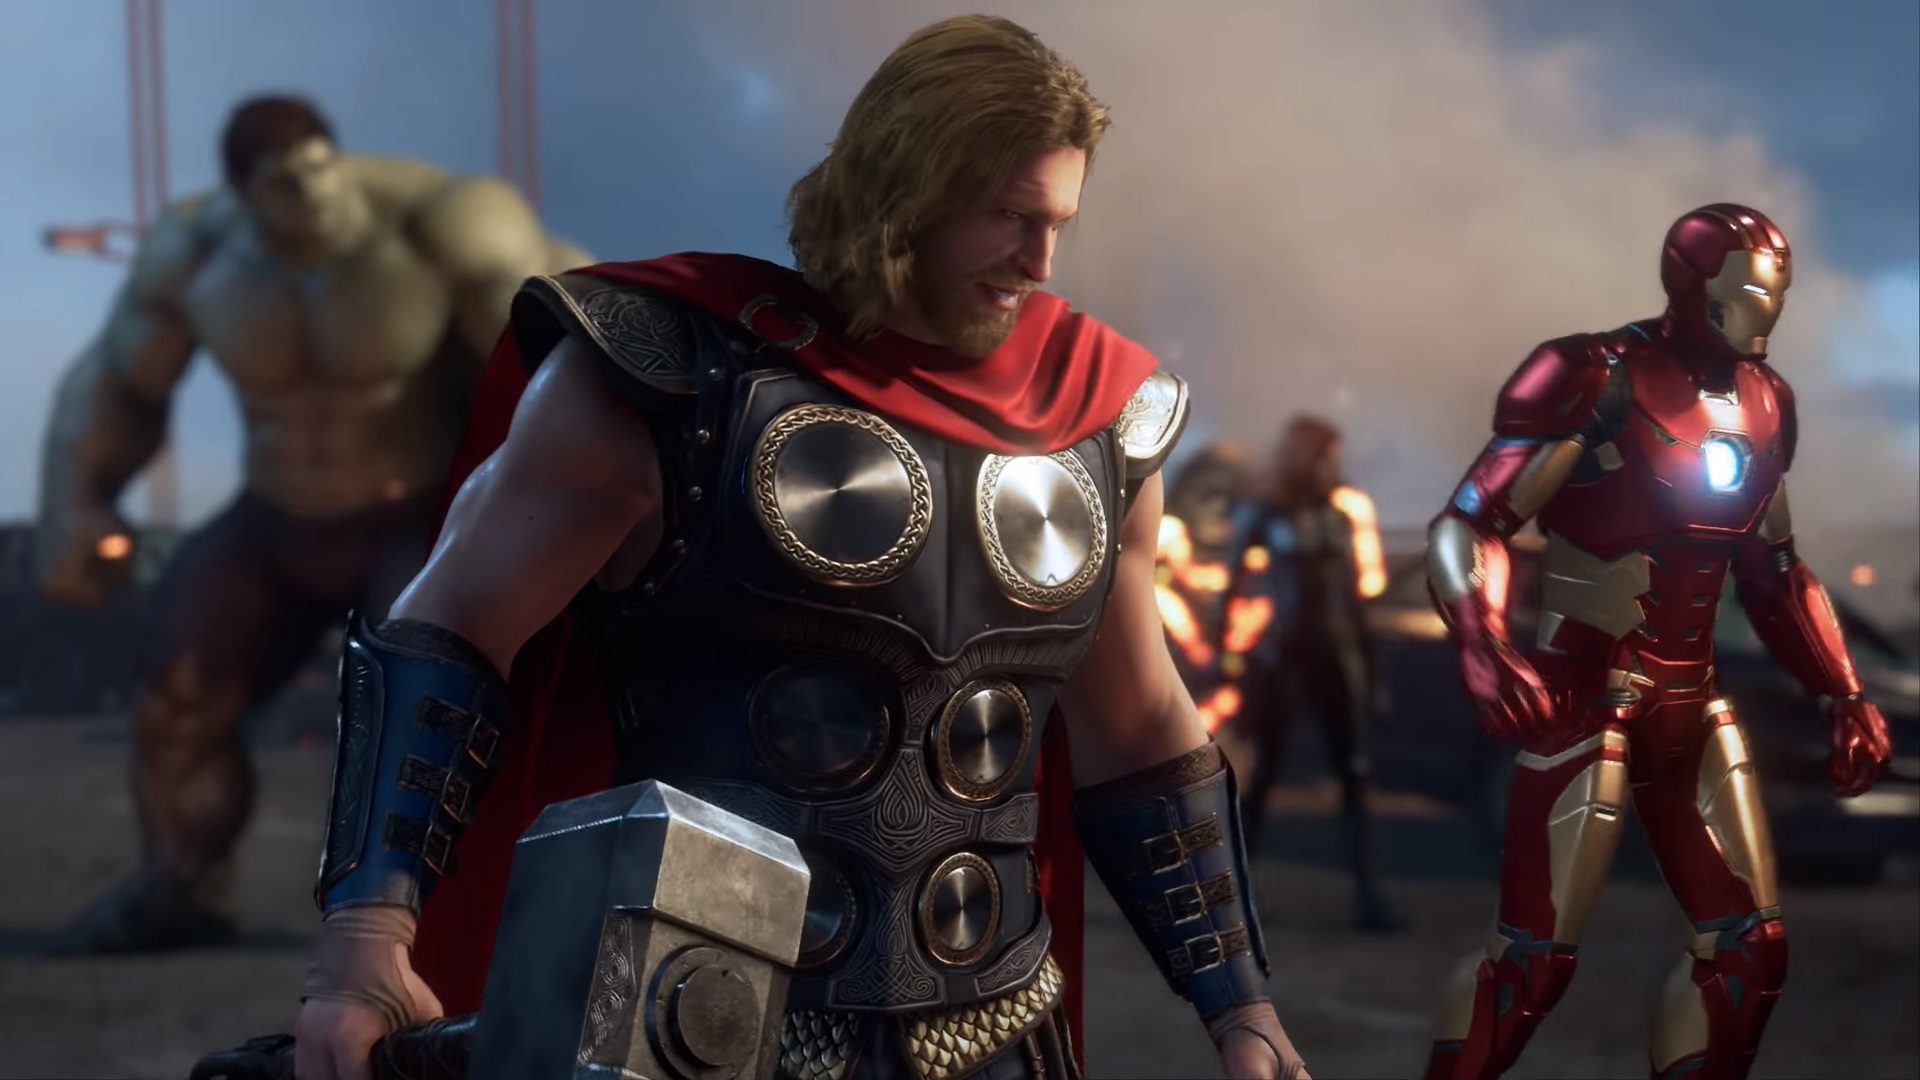 Marvel's Avengers Hands-On: Gear, Skills, and Co-Op